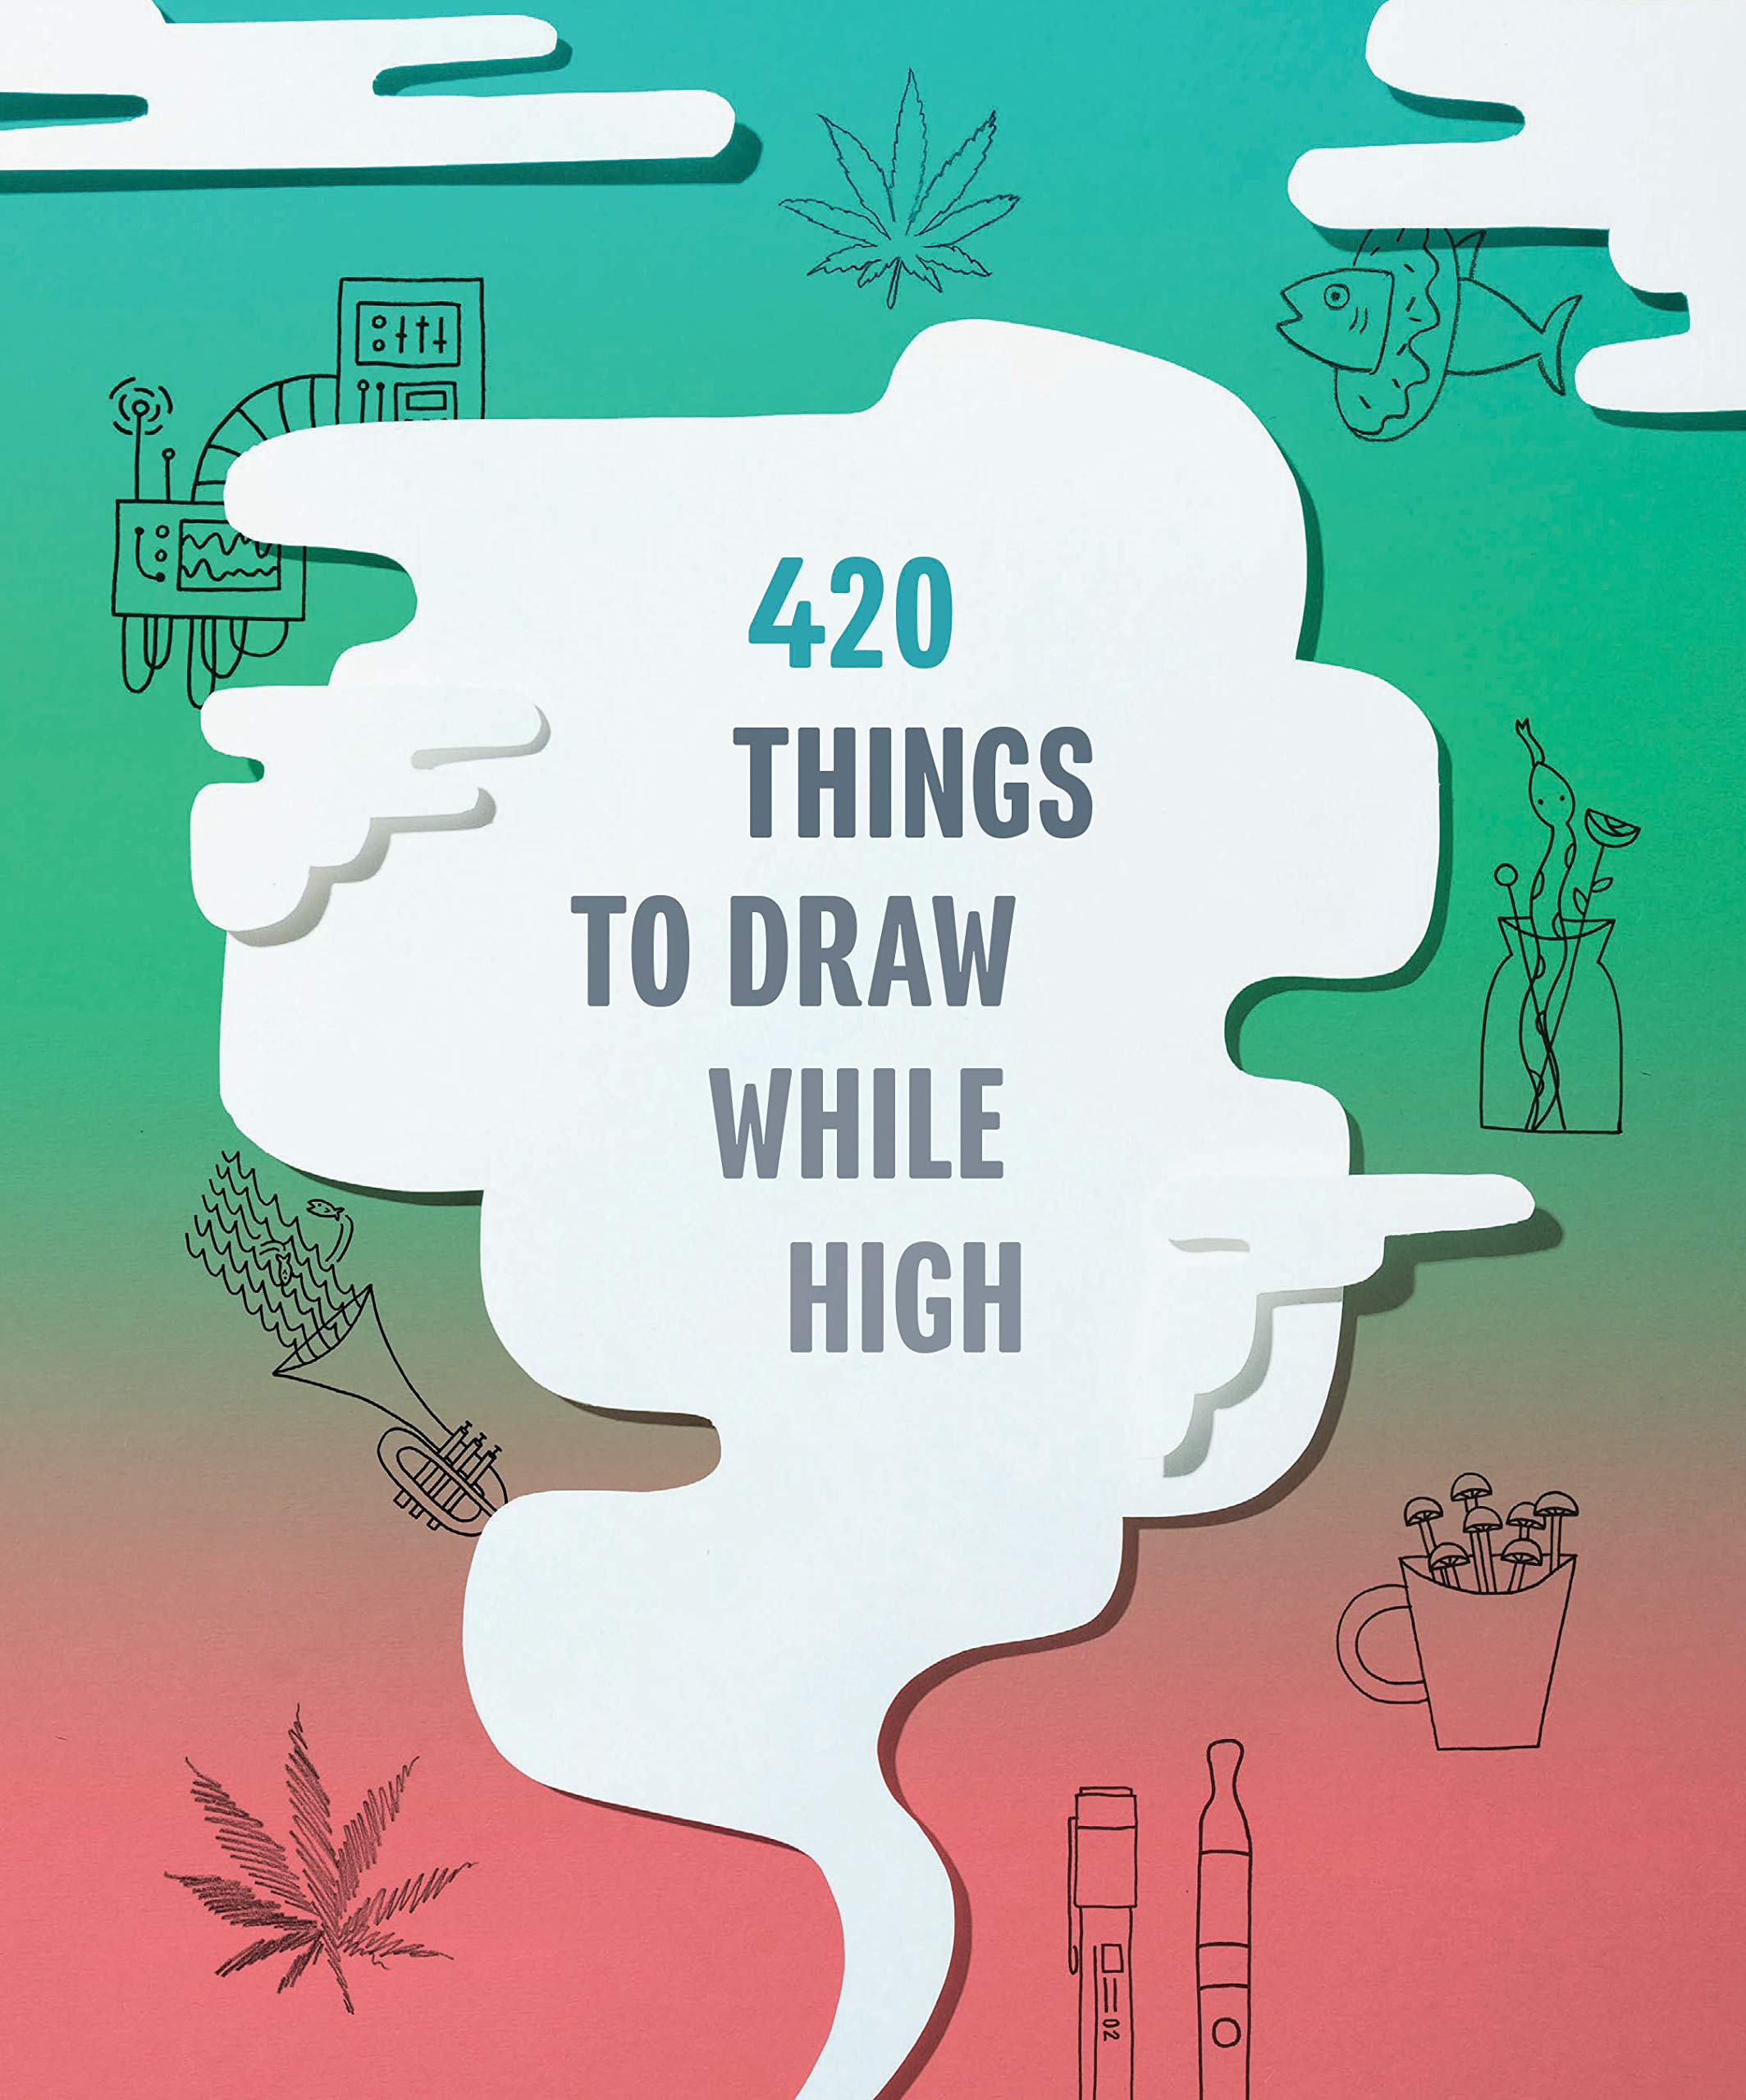 420 Things To Draw While High Gifts For Stoners Weed Gifts For Men And Women Marijuana Gifts Chronicle Books 9781452176901 Amazon Com Books